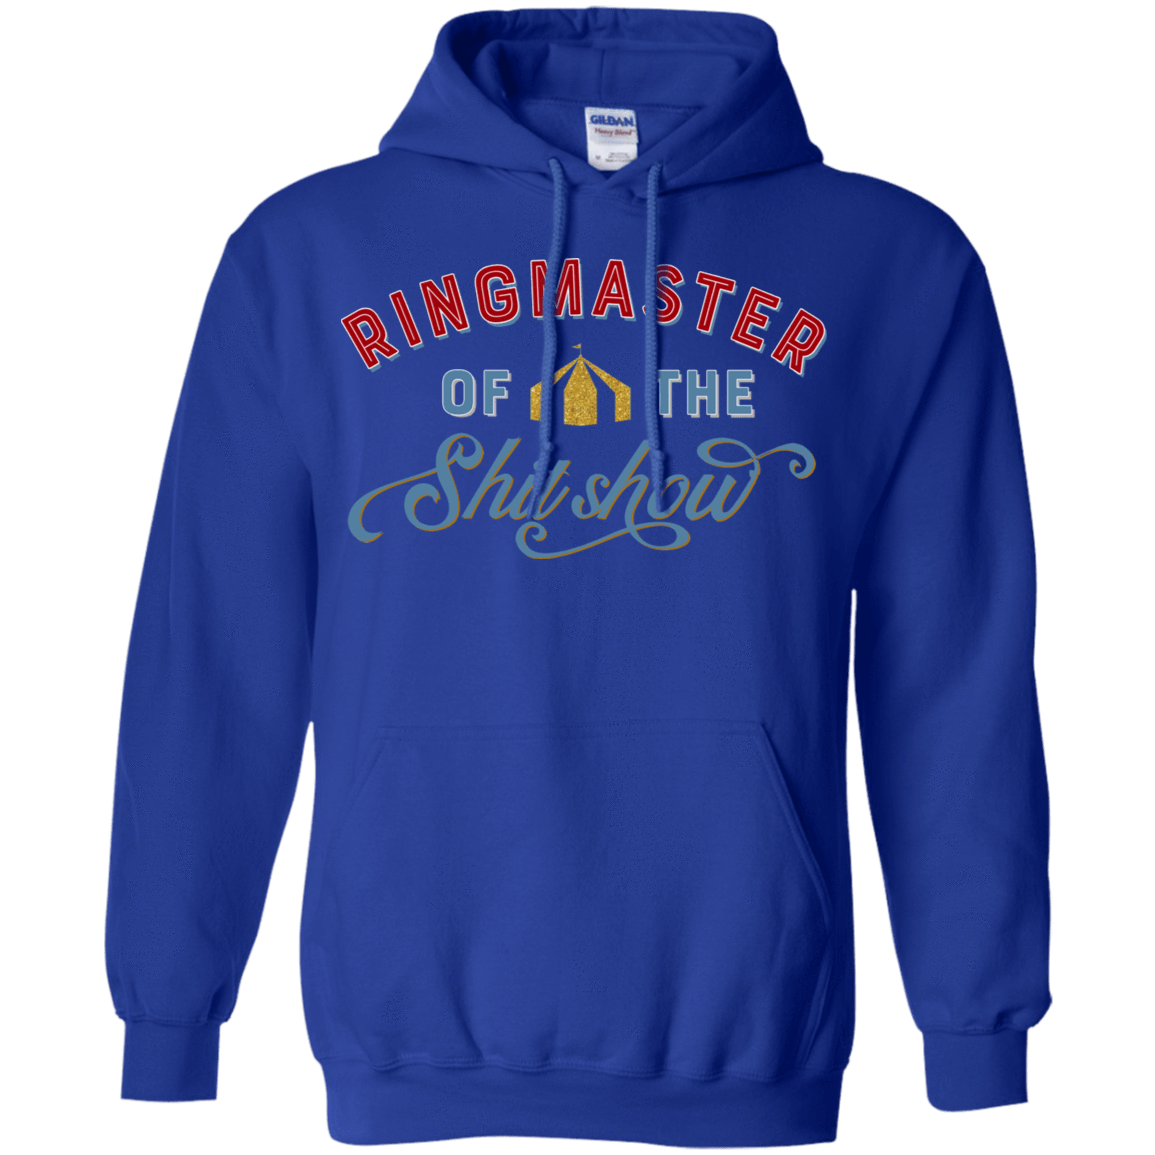 Ringmaster Of The Shit Show T-Shirts, Hoodie, Tank 541-4765-77675119-23175 - Tee Ript